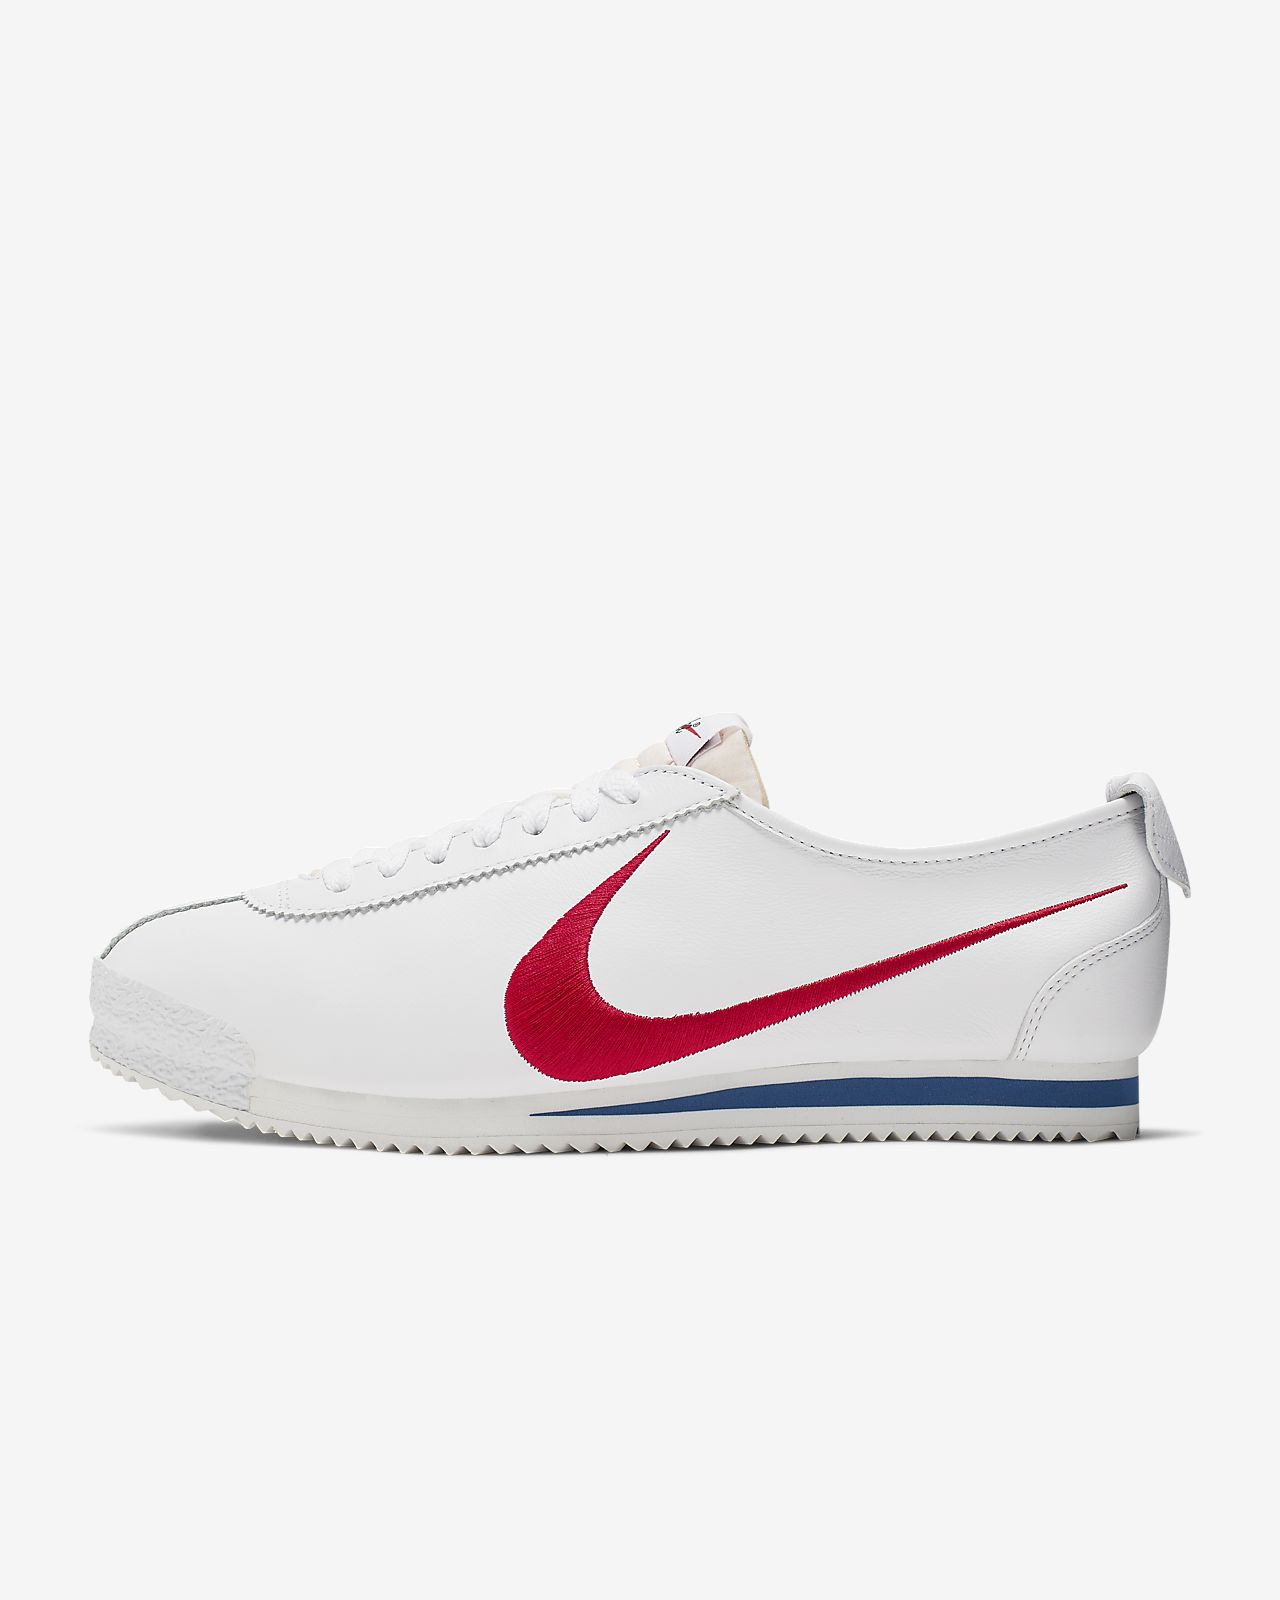 Nike Cortez '72 S.D. Men's Shoe